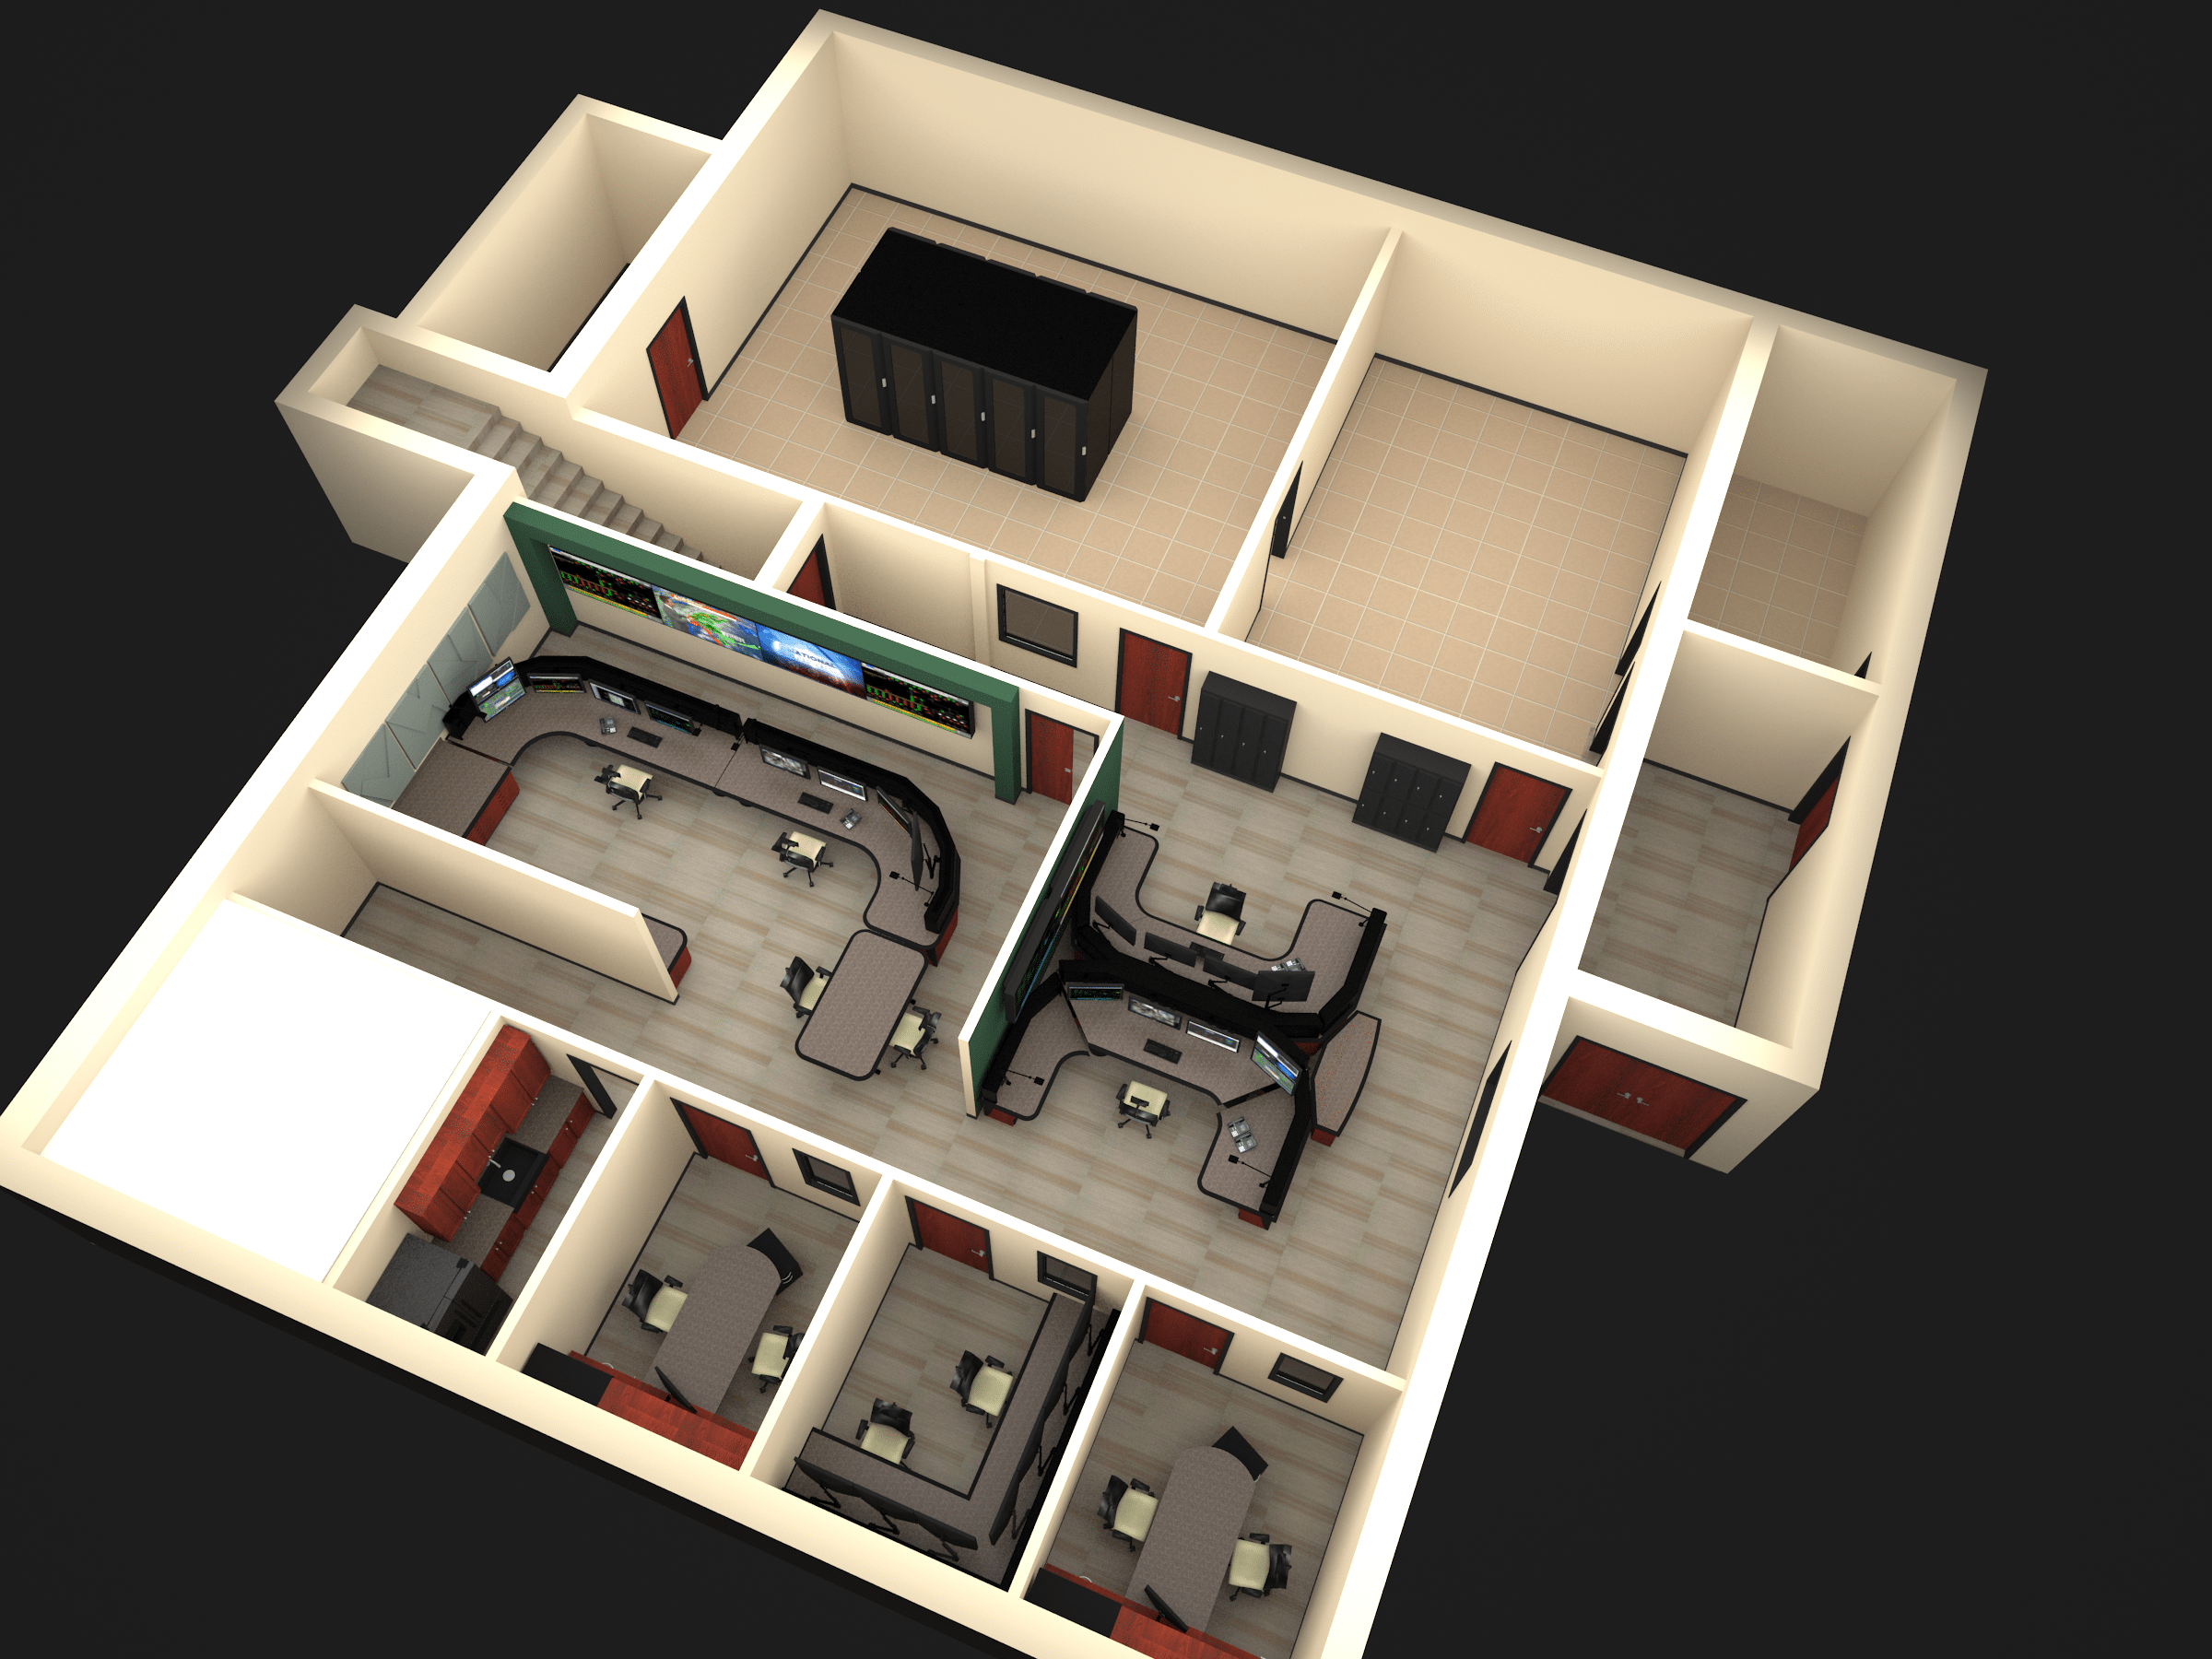 3D birds eye view of floor plan layout